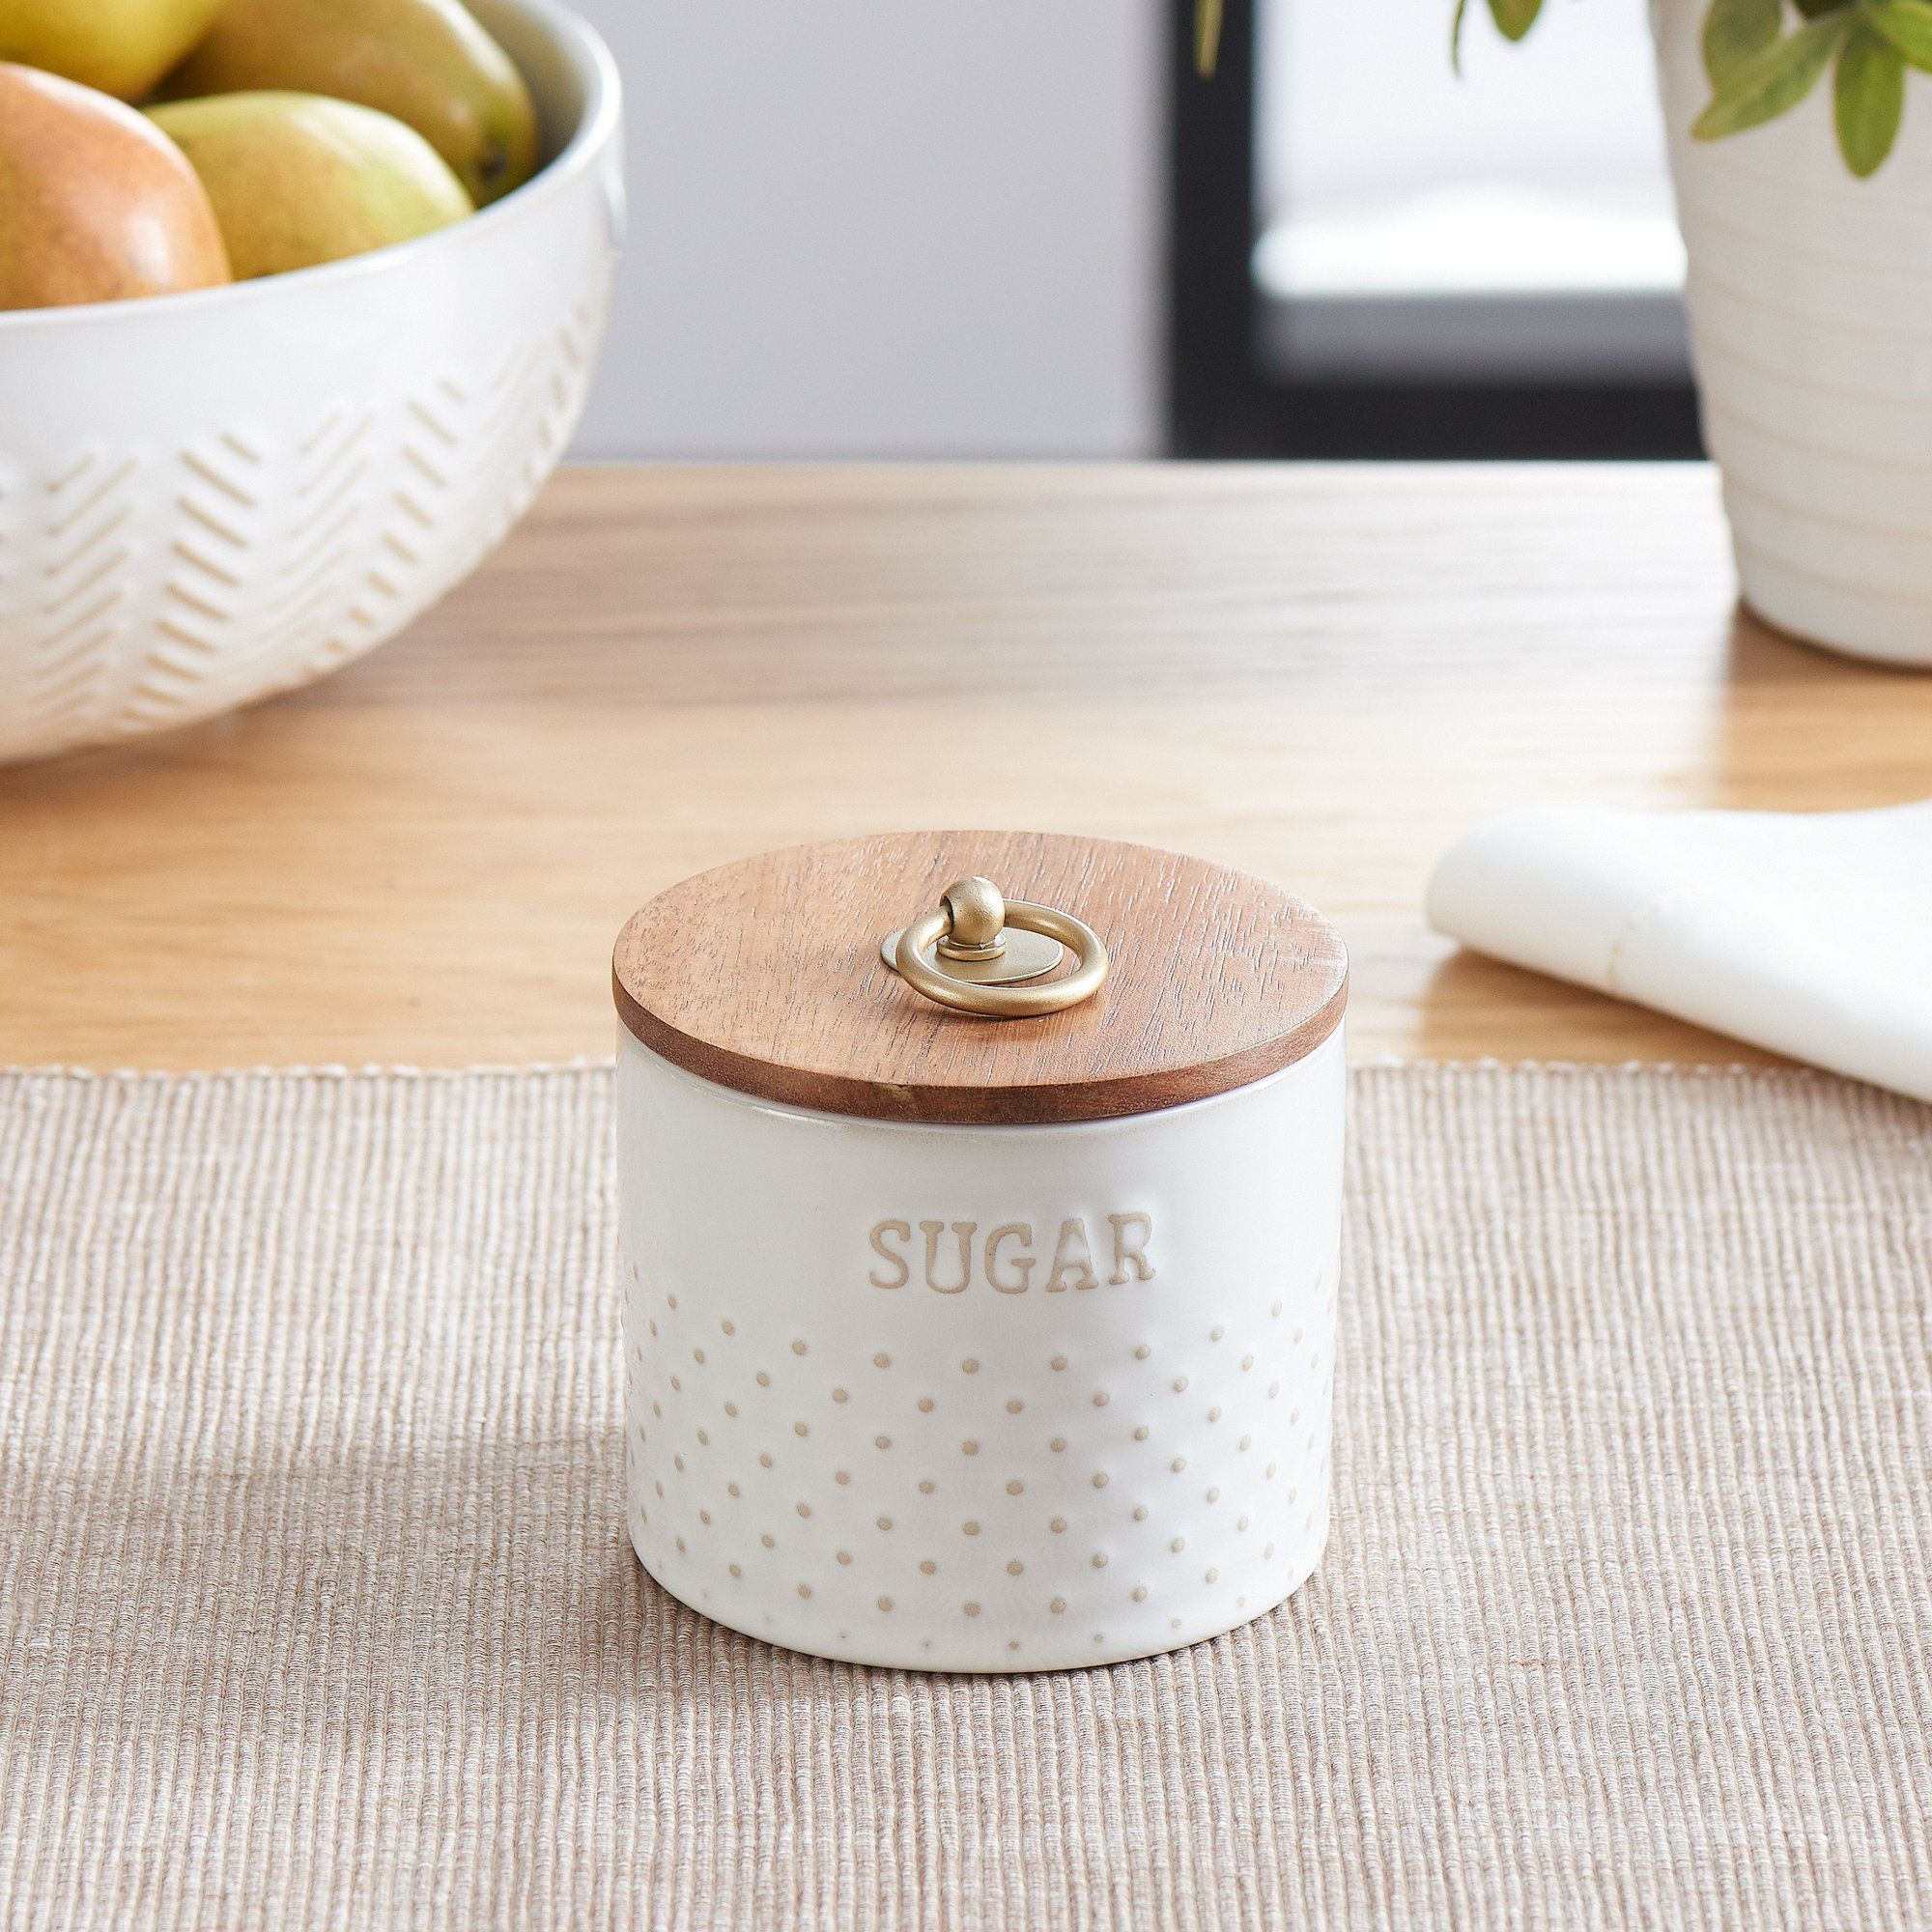 f003c23cd8c611df8db9ff7fe1b9f565 - Better Homes & Gardens Ceramic Hobnail Canister Small